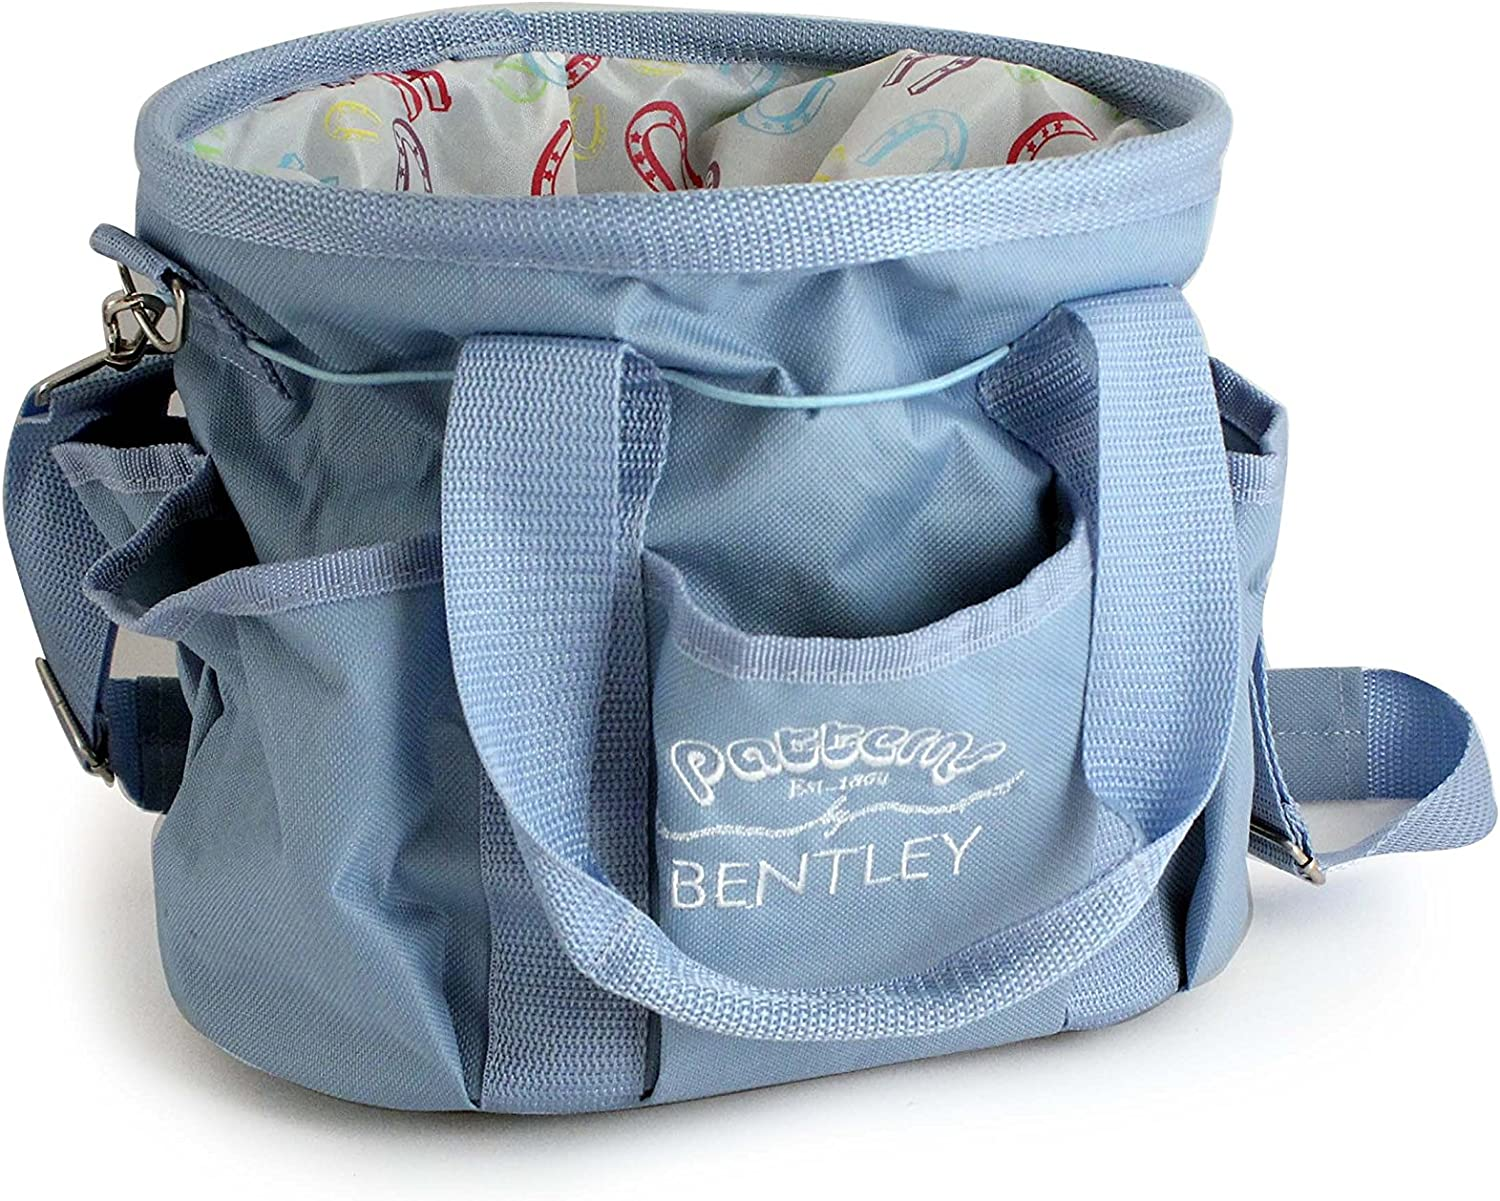 BENTLEY PATTERNS HORSE SHOE CARRY BAG blueE